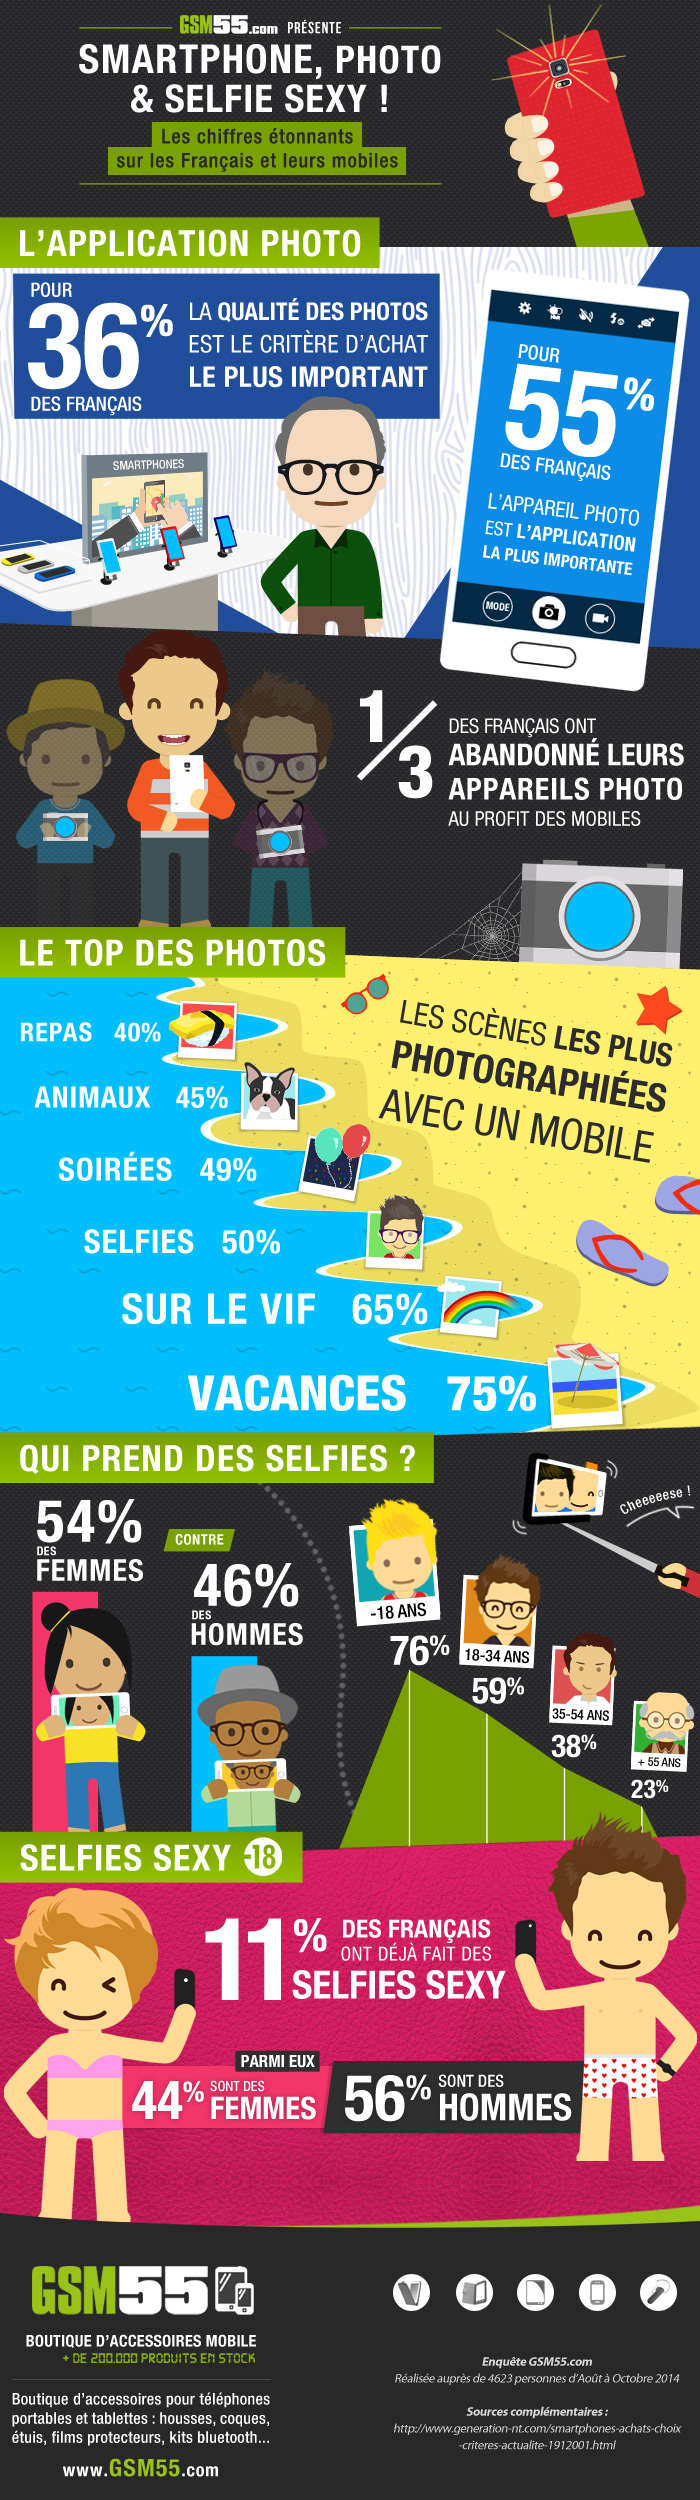 Infographie-smartphone-photo-selfie-sexy